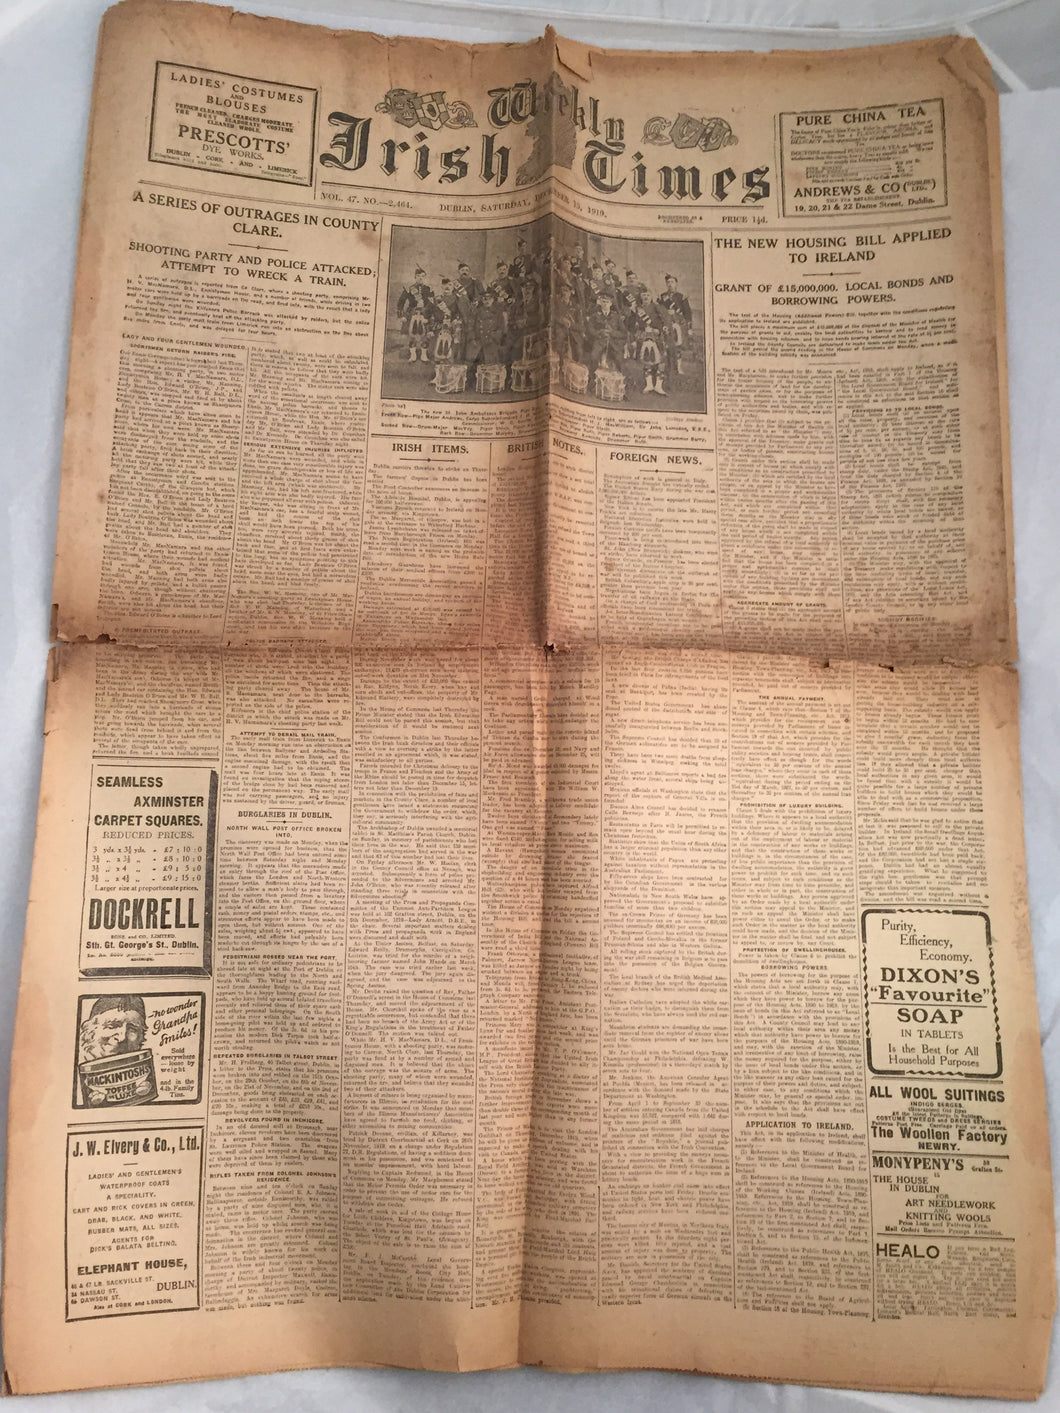 The Weekly Irish Times - 13-12-1919 - War of Independence.